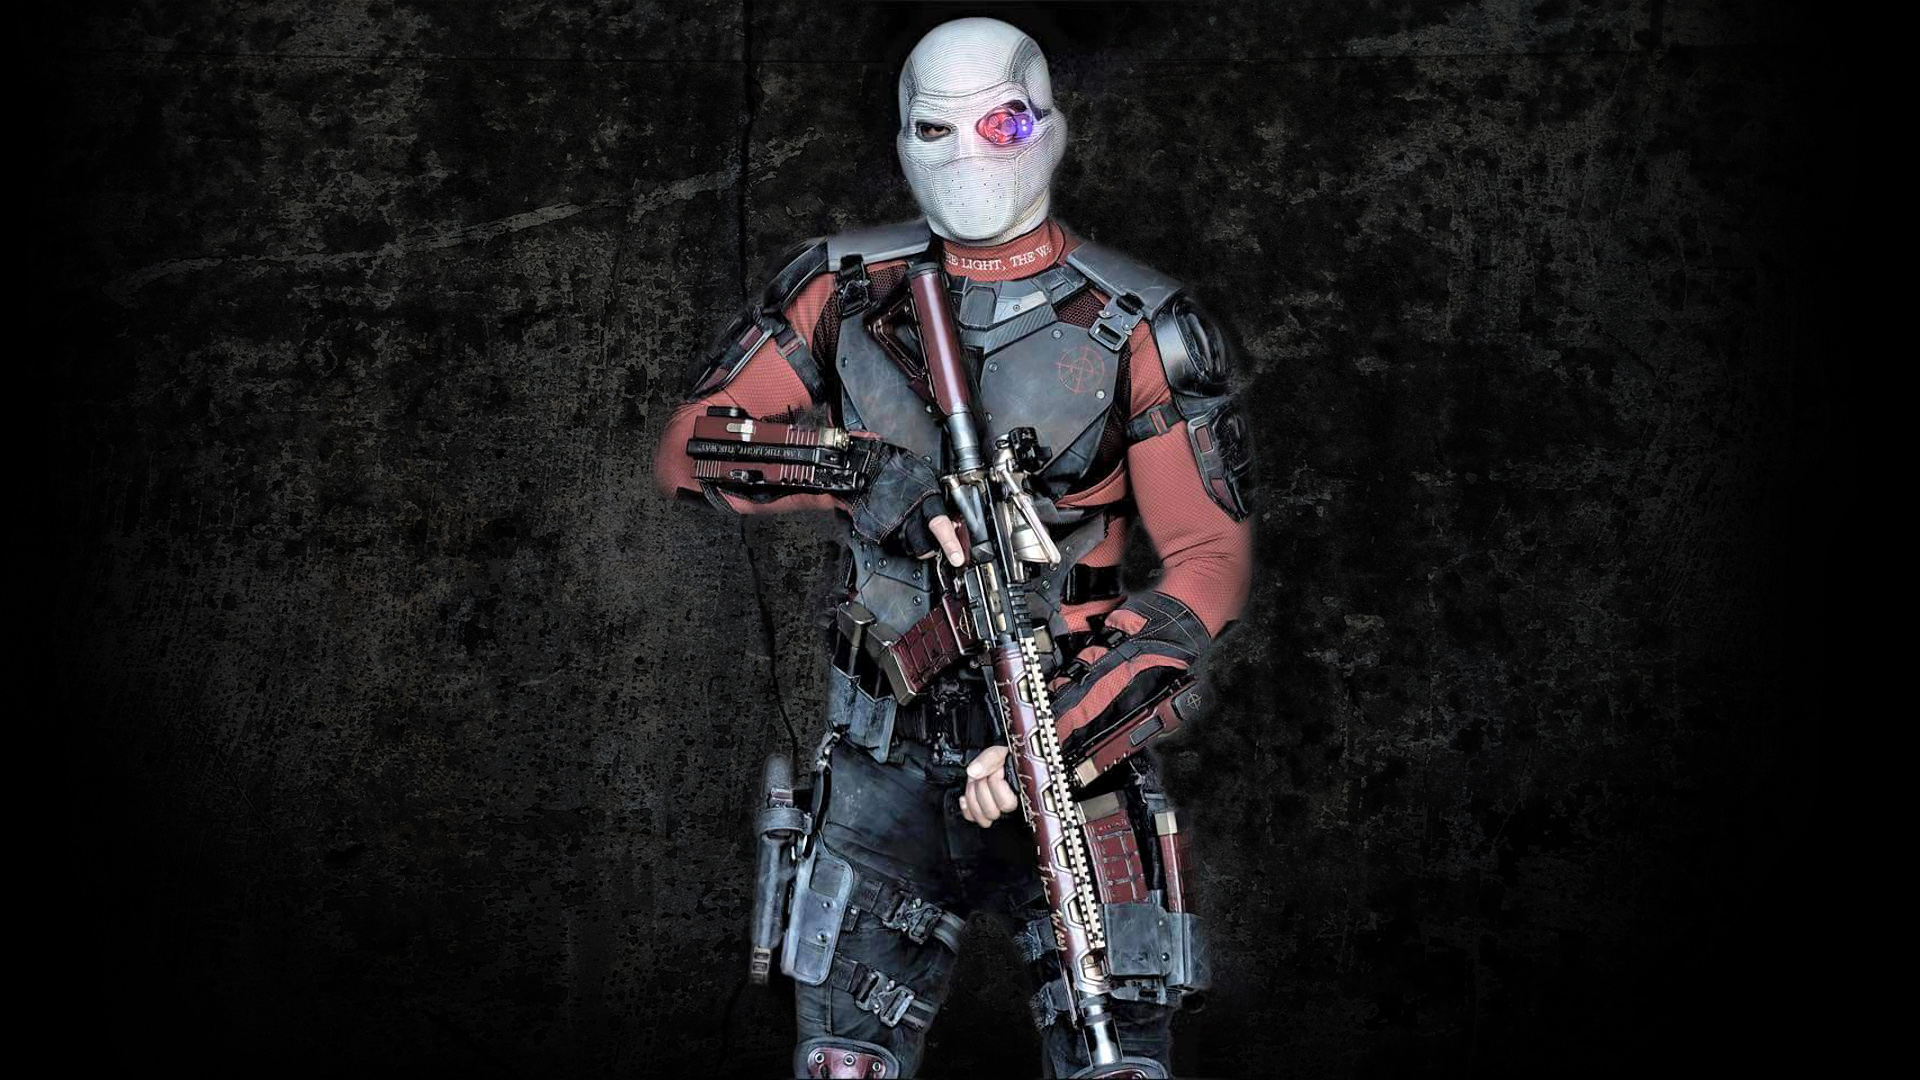 deadshot_in_suicide_squad_movie-HD